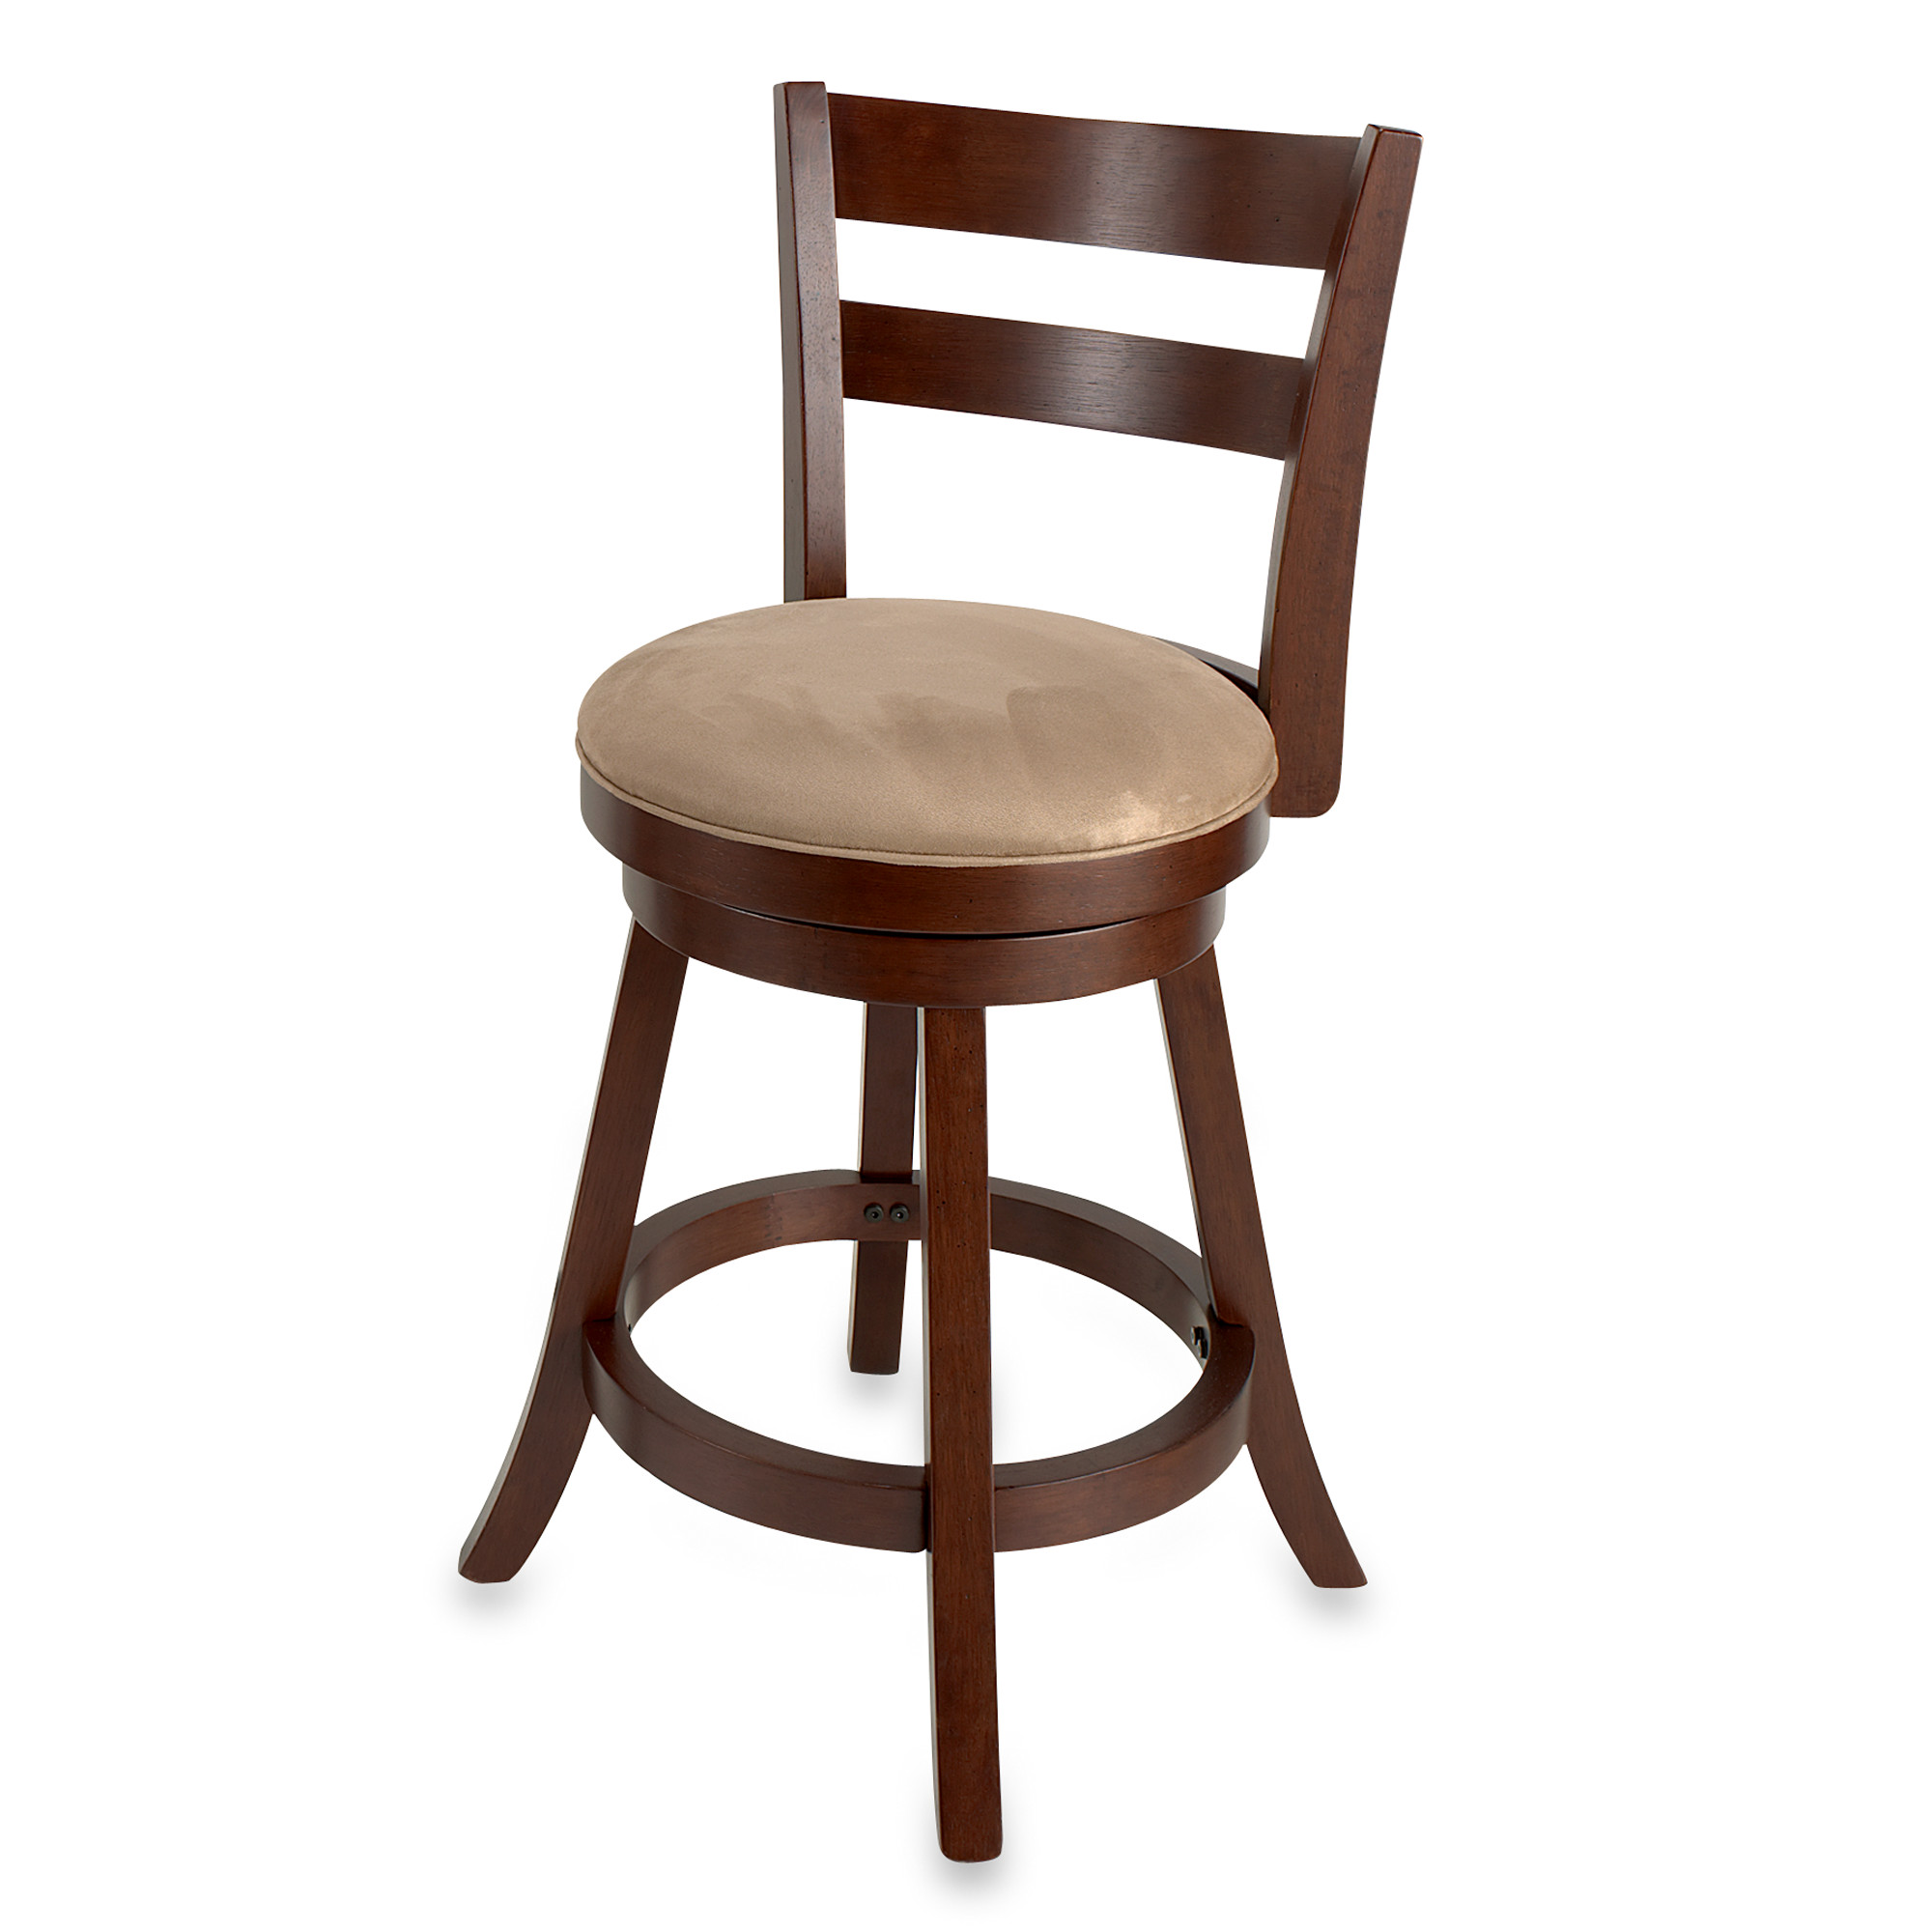 Sawyer Stool Assembly Instructions